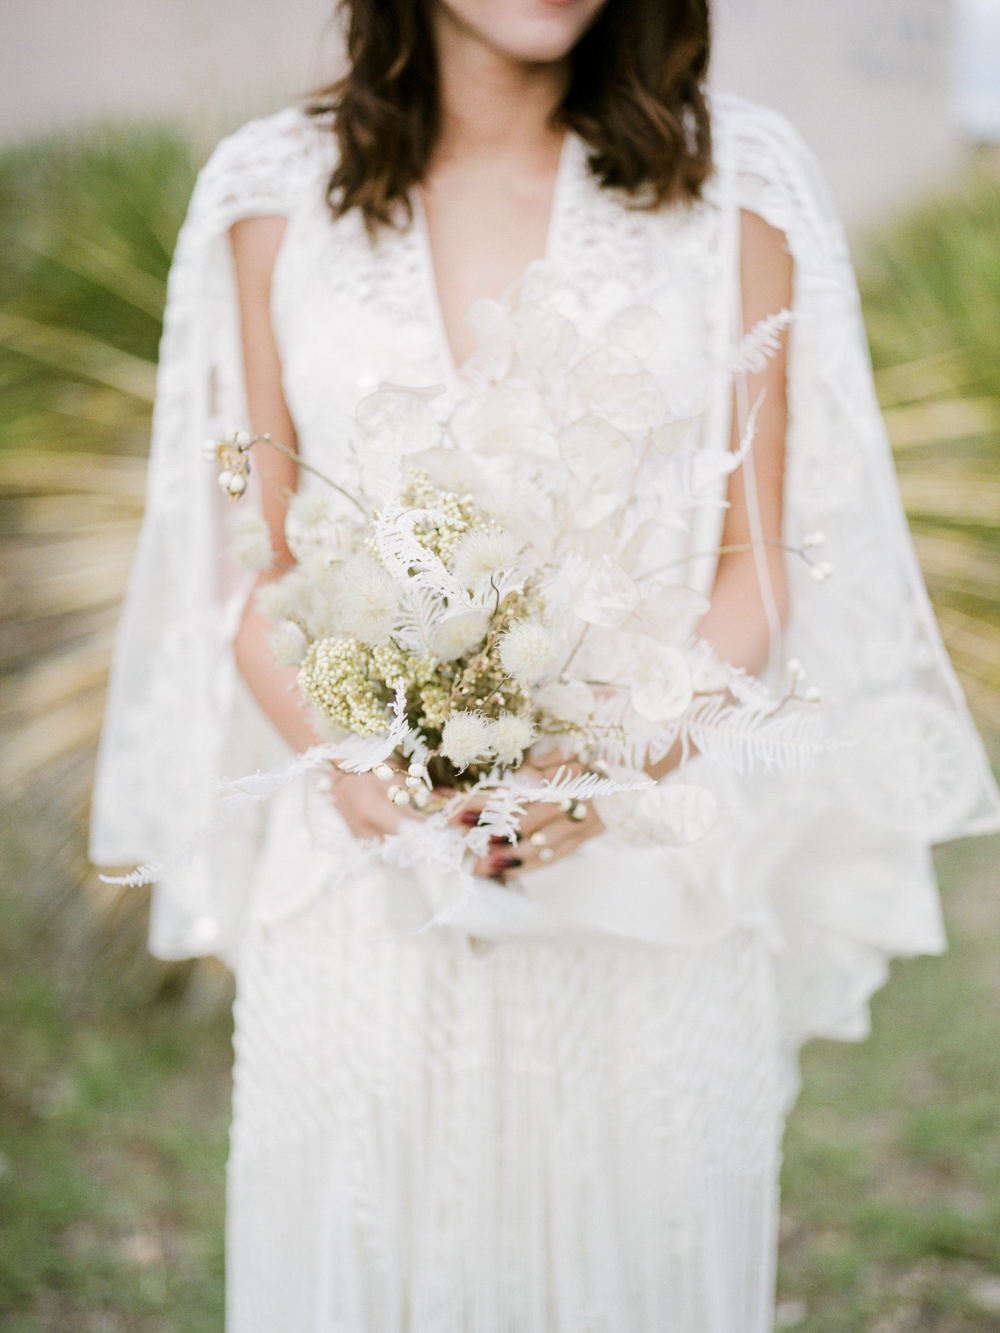 Christine Gosch - destination film photographer - houston wedding photographer - fine art film photographer - elopement photographer - destination wedding - understated wedding - simple beautiful wedding photography-90.jpg